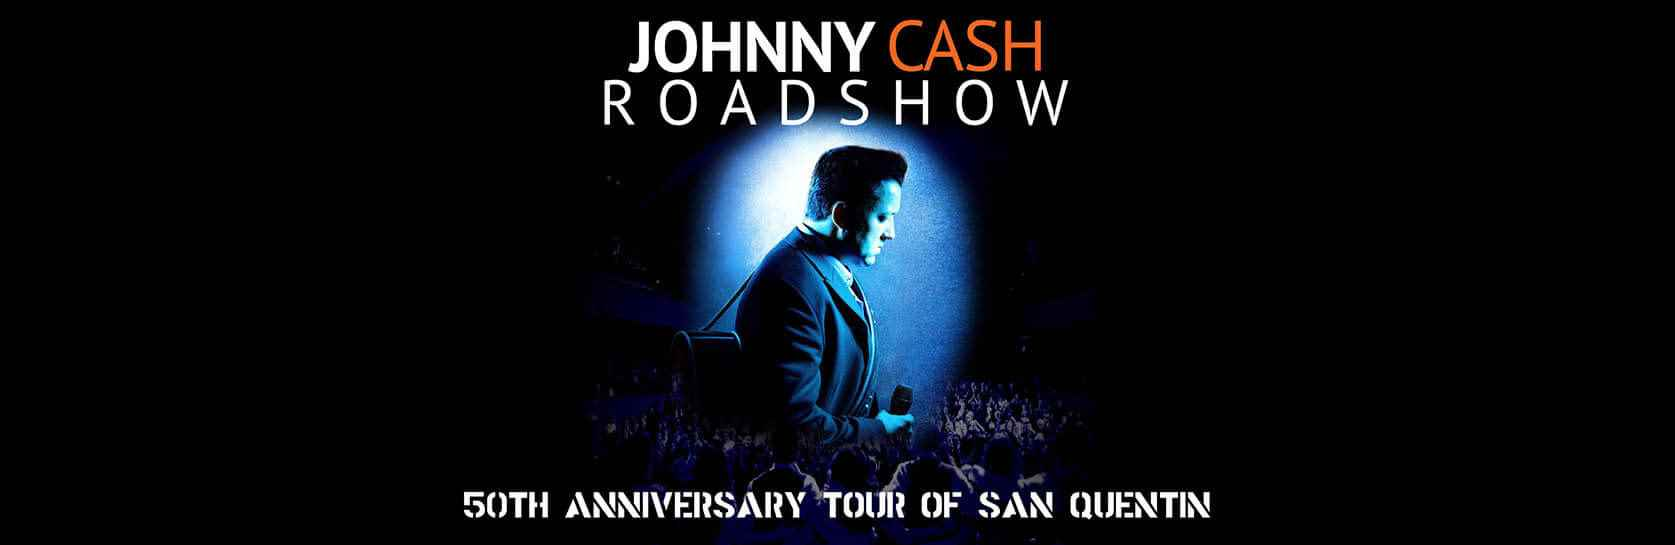 The Johnny Cash Roadshow Performs 50th anniversary of San Quentin Show